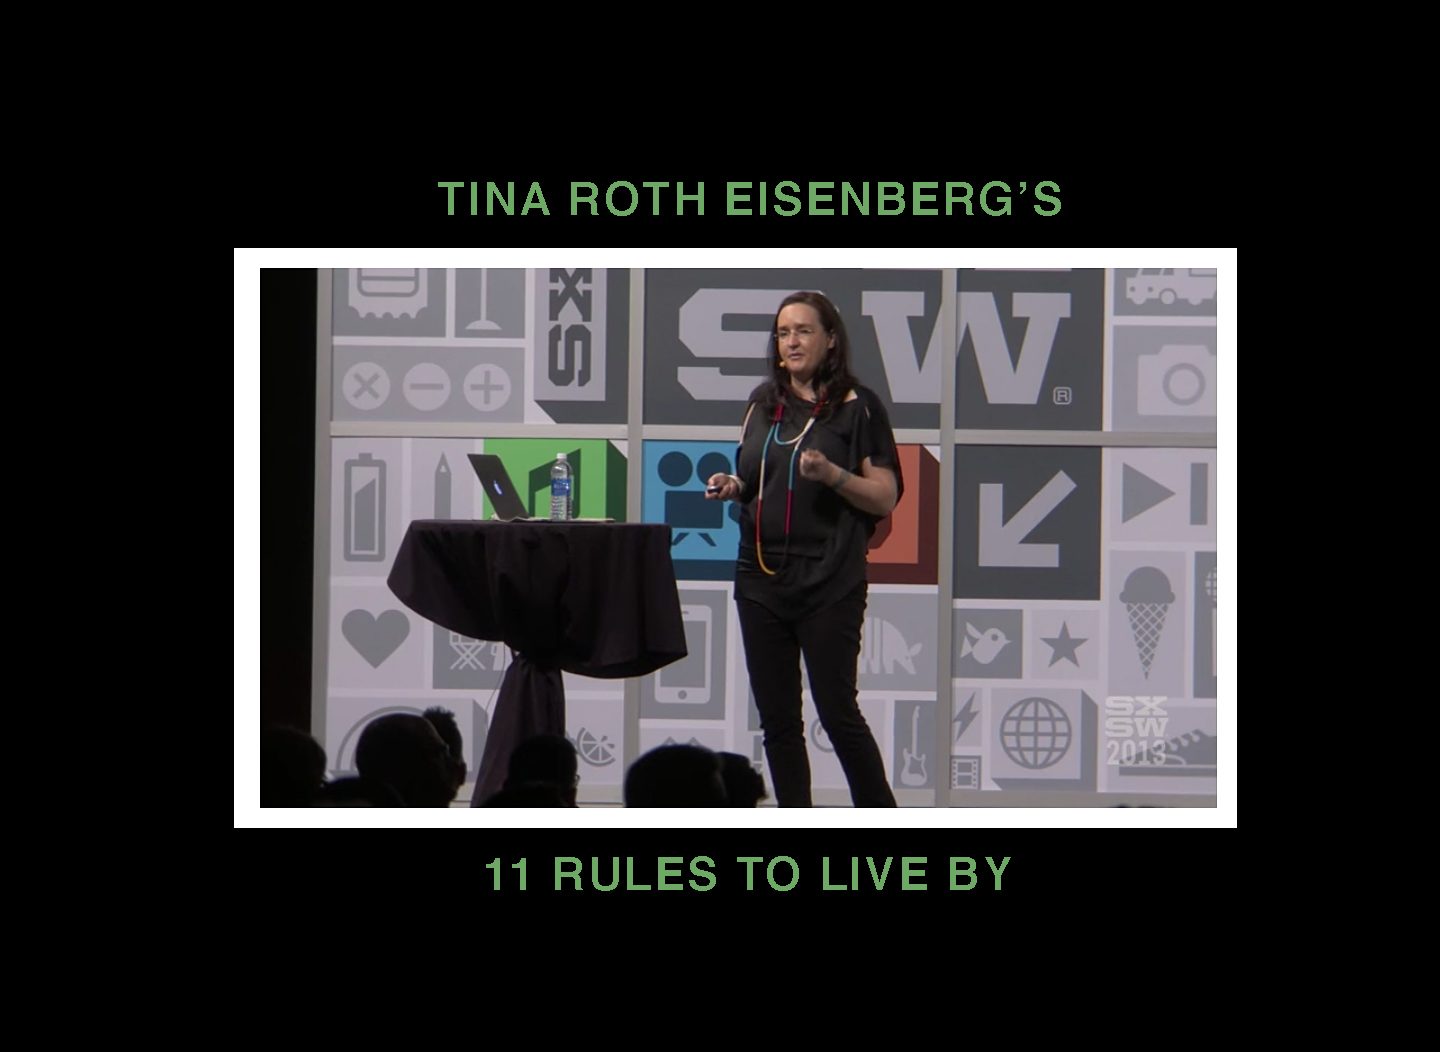 tina roth eisenberg's 11 rules to live by